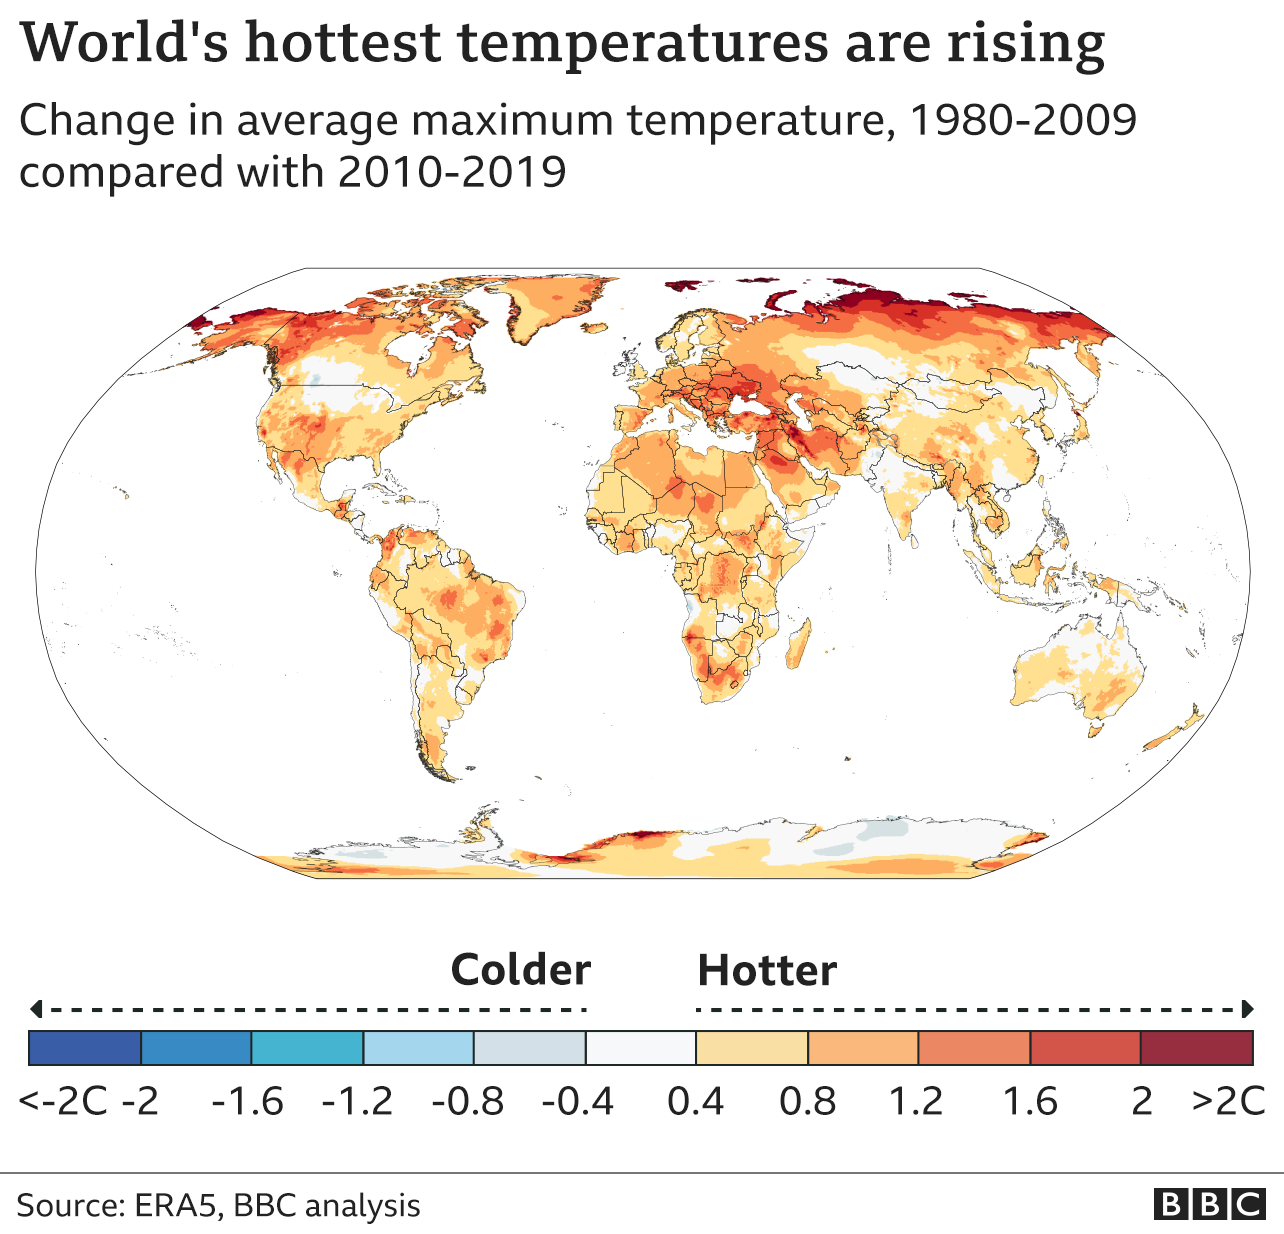 World map showing change in average maximum temperatures between the last decade and the reference period of 1980-2009